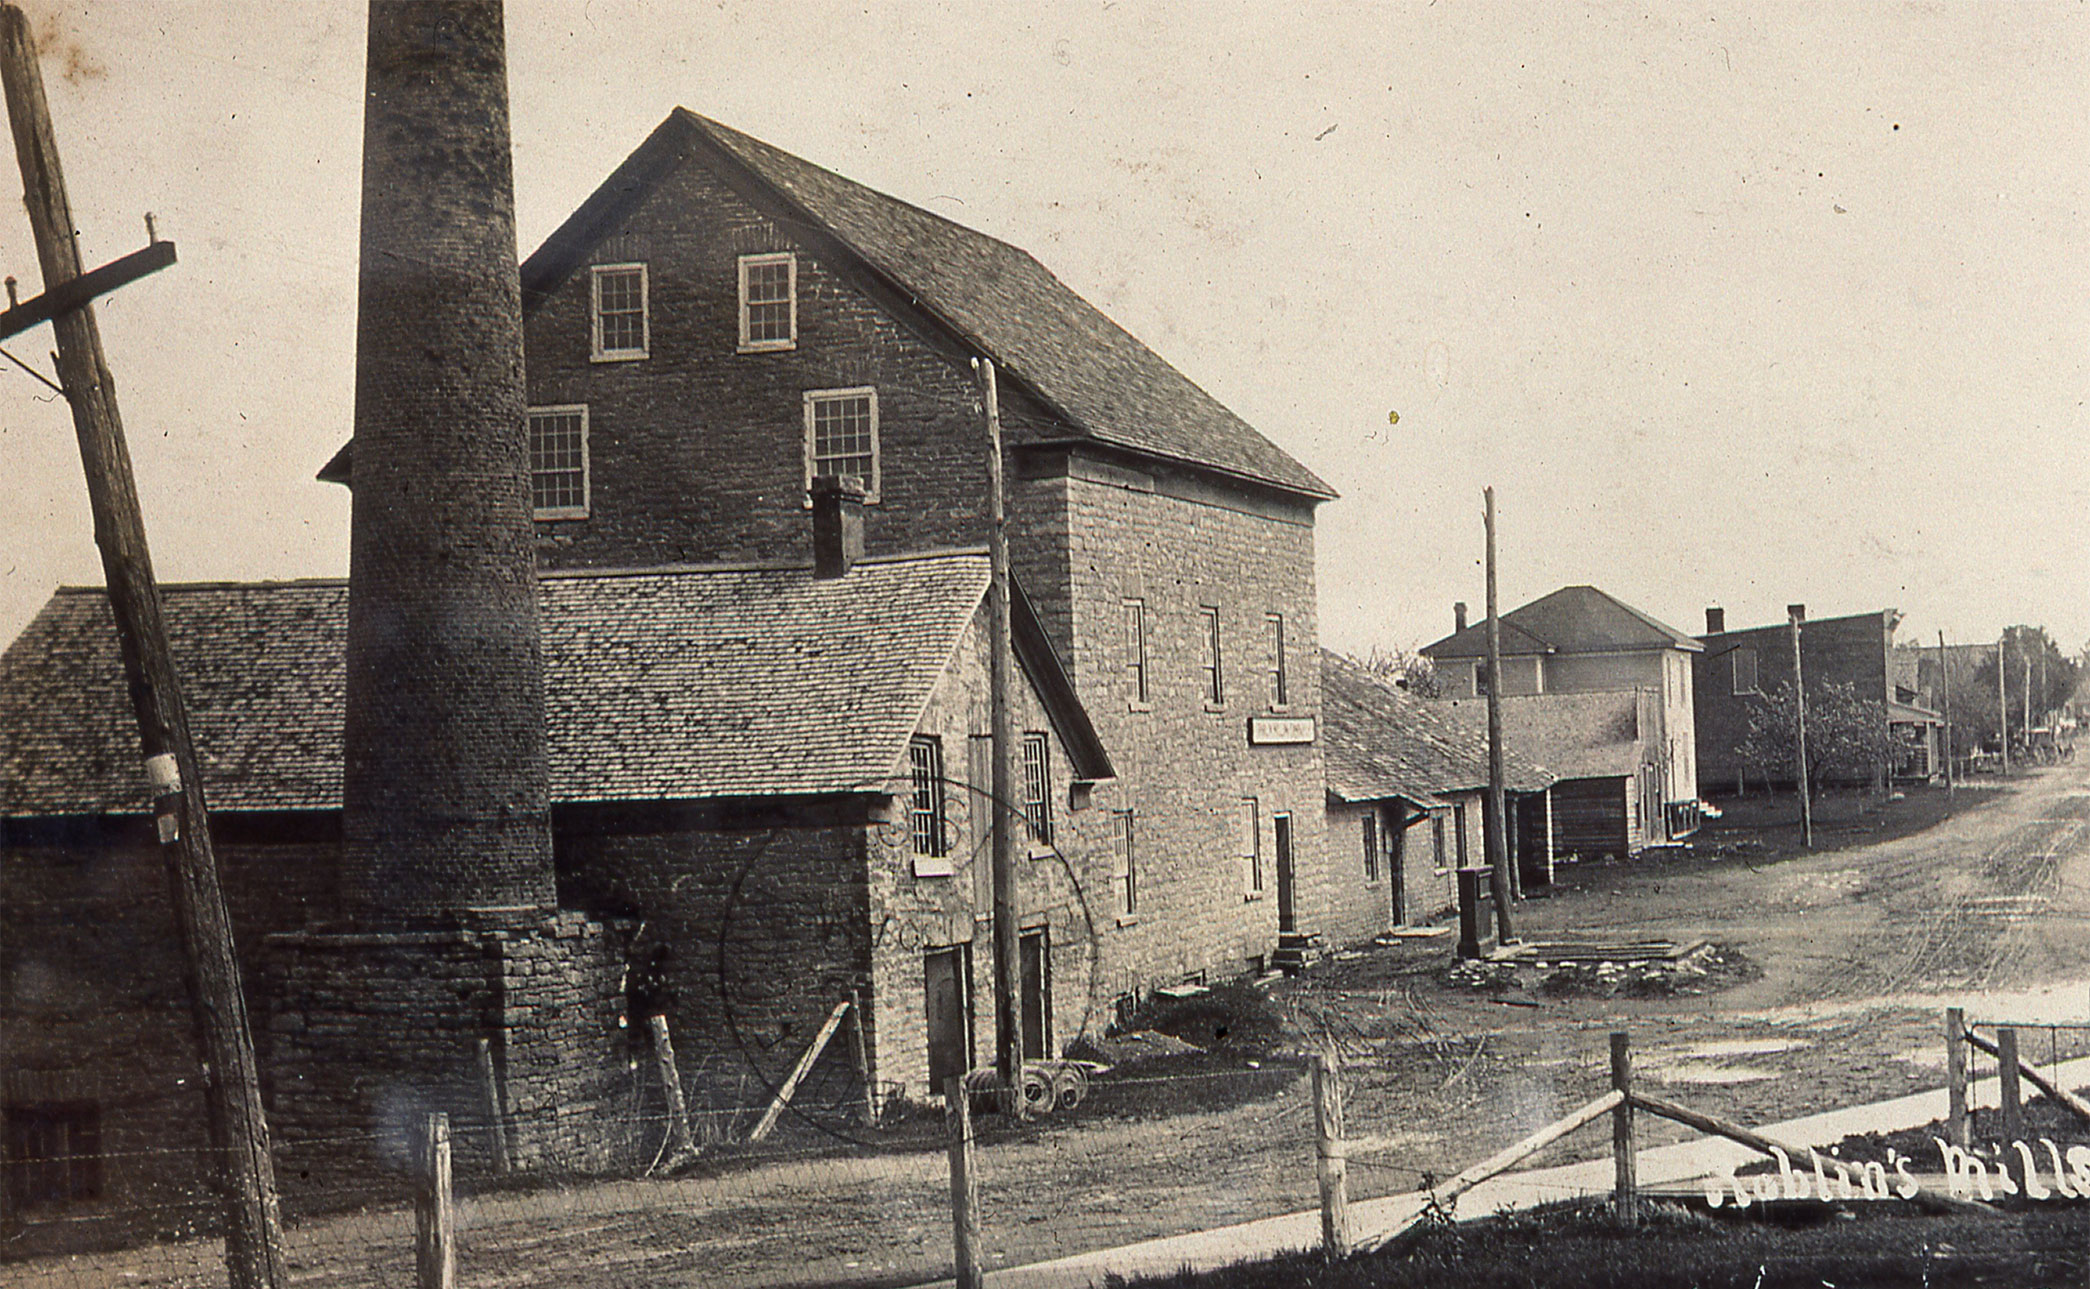 An early photo of Roblin's Mill